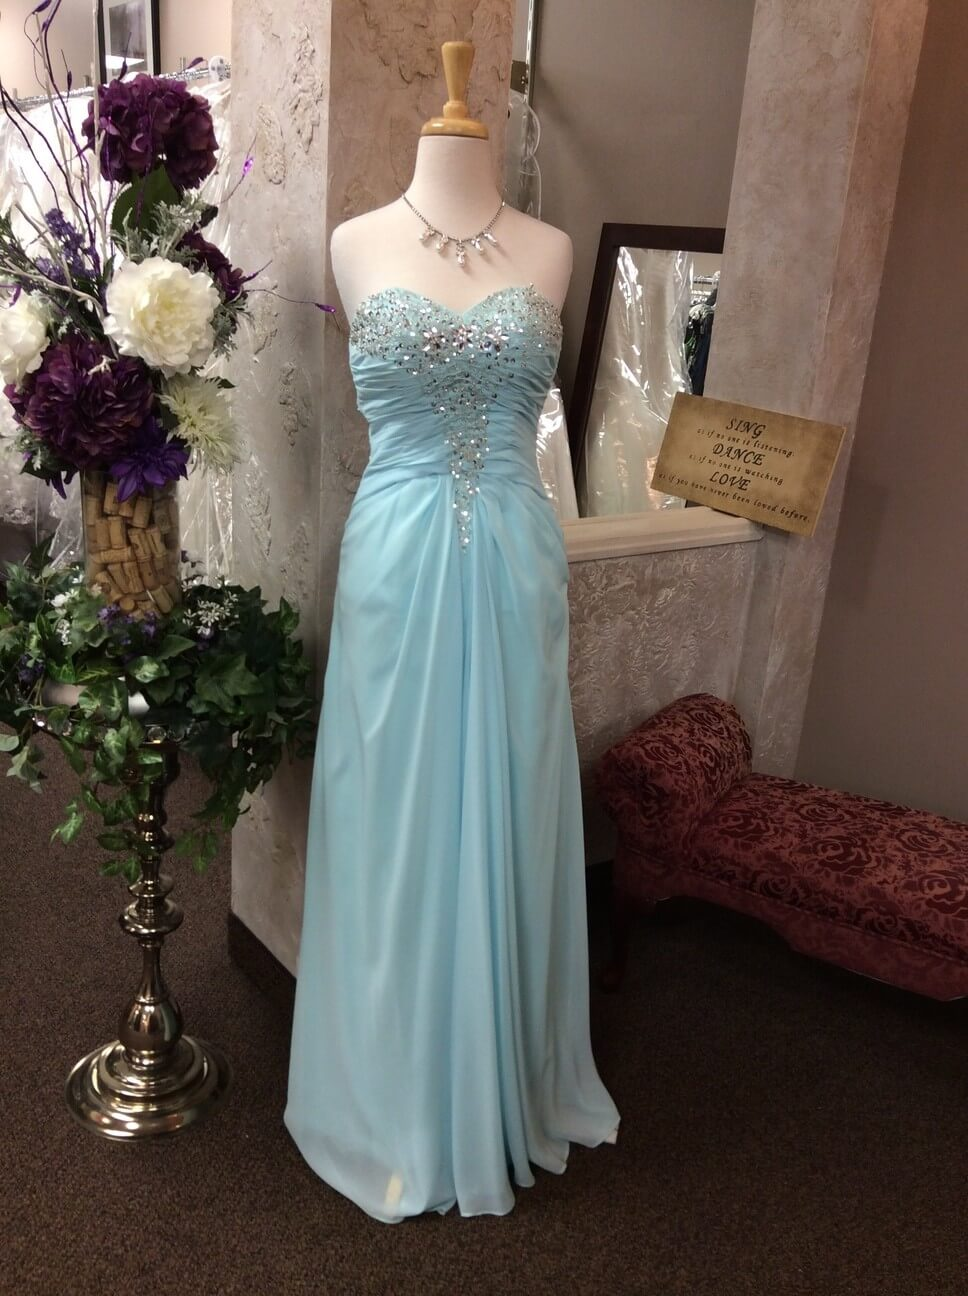 bridesmaid dress alterations minneapolis mn flower girl